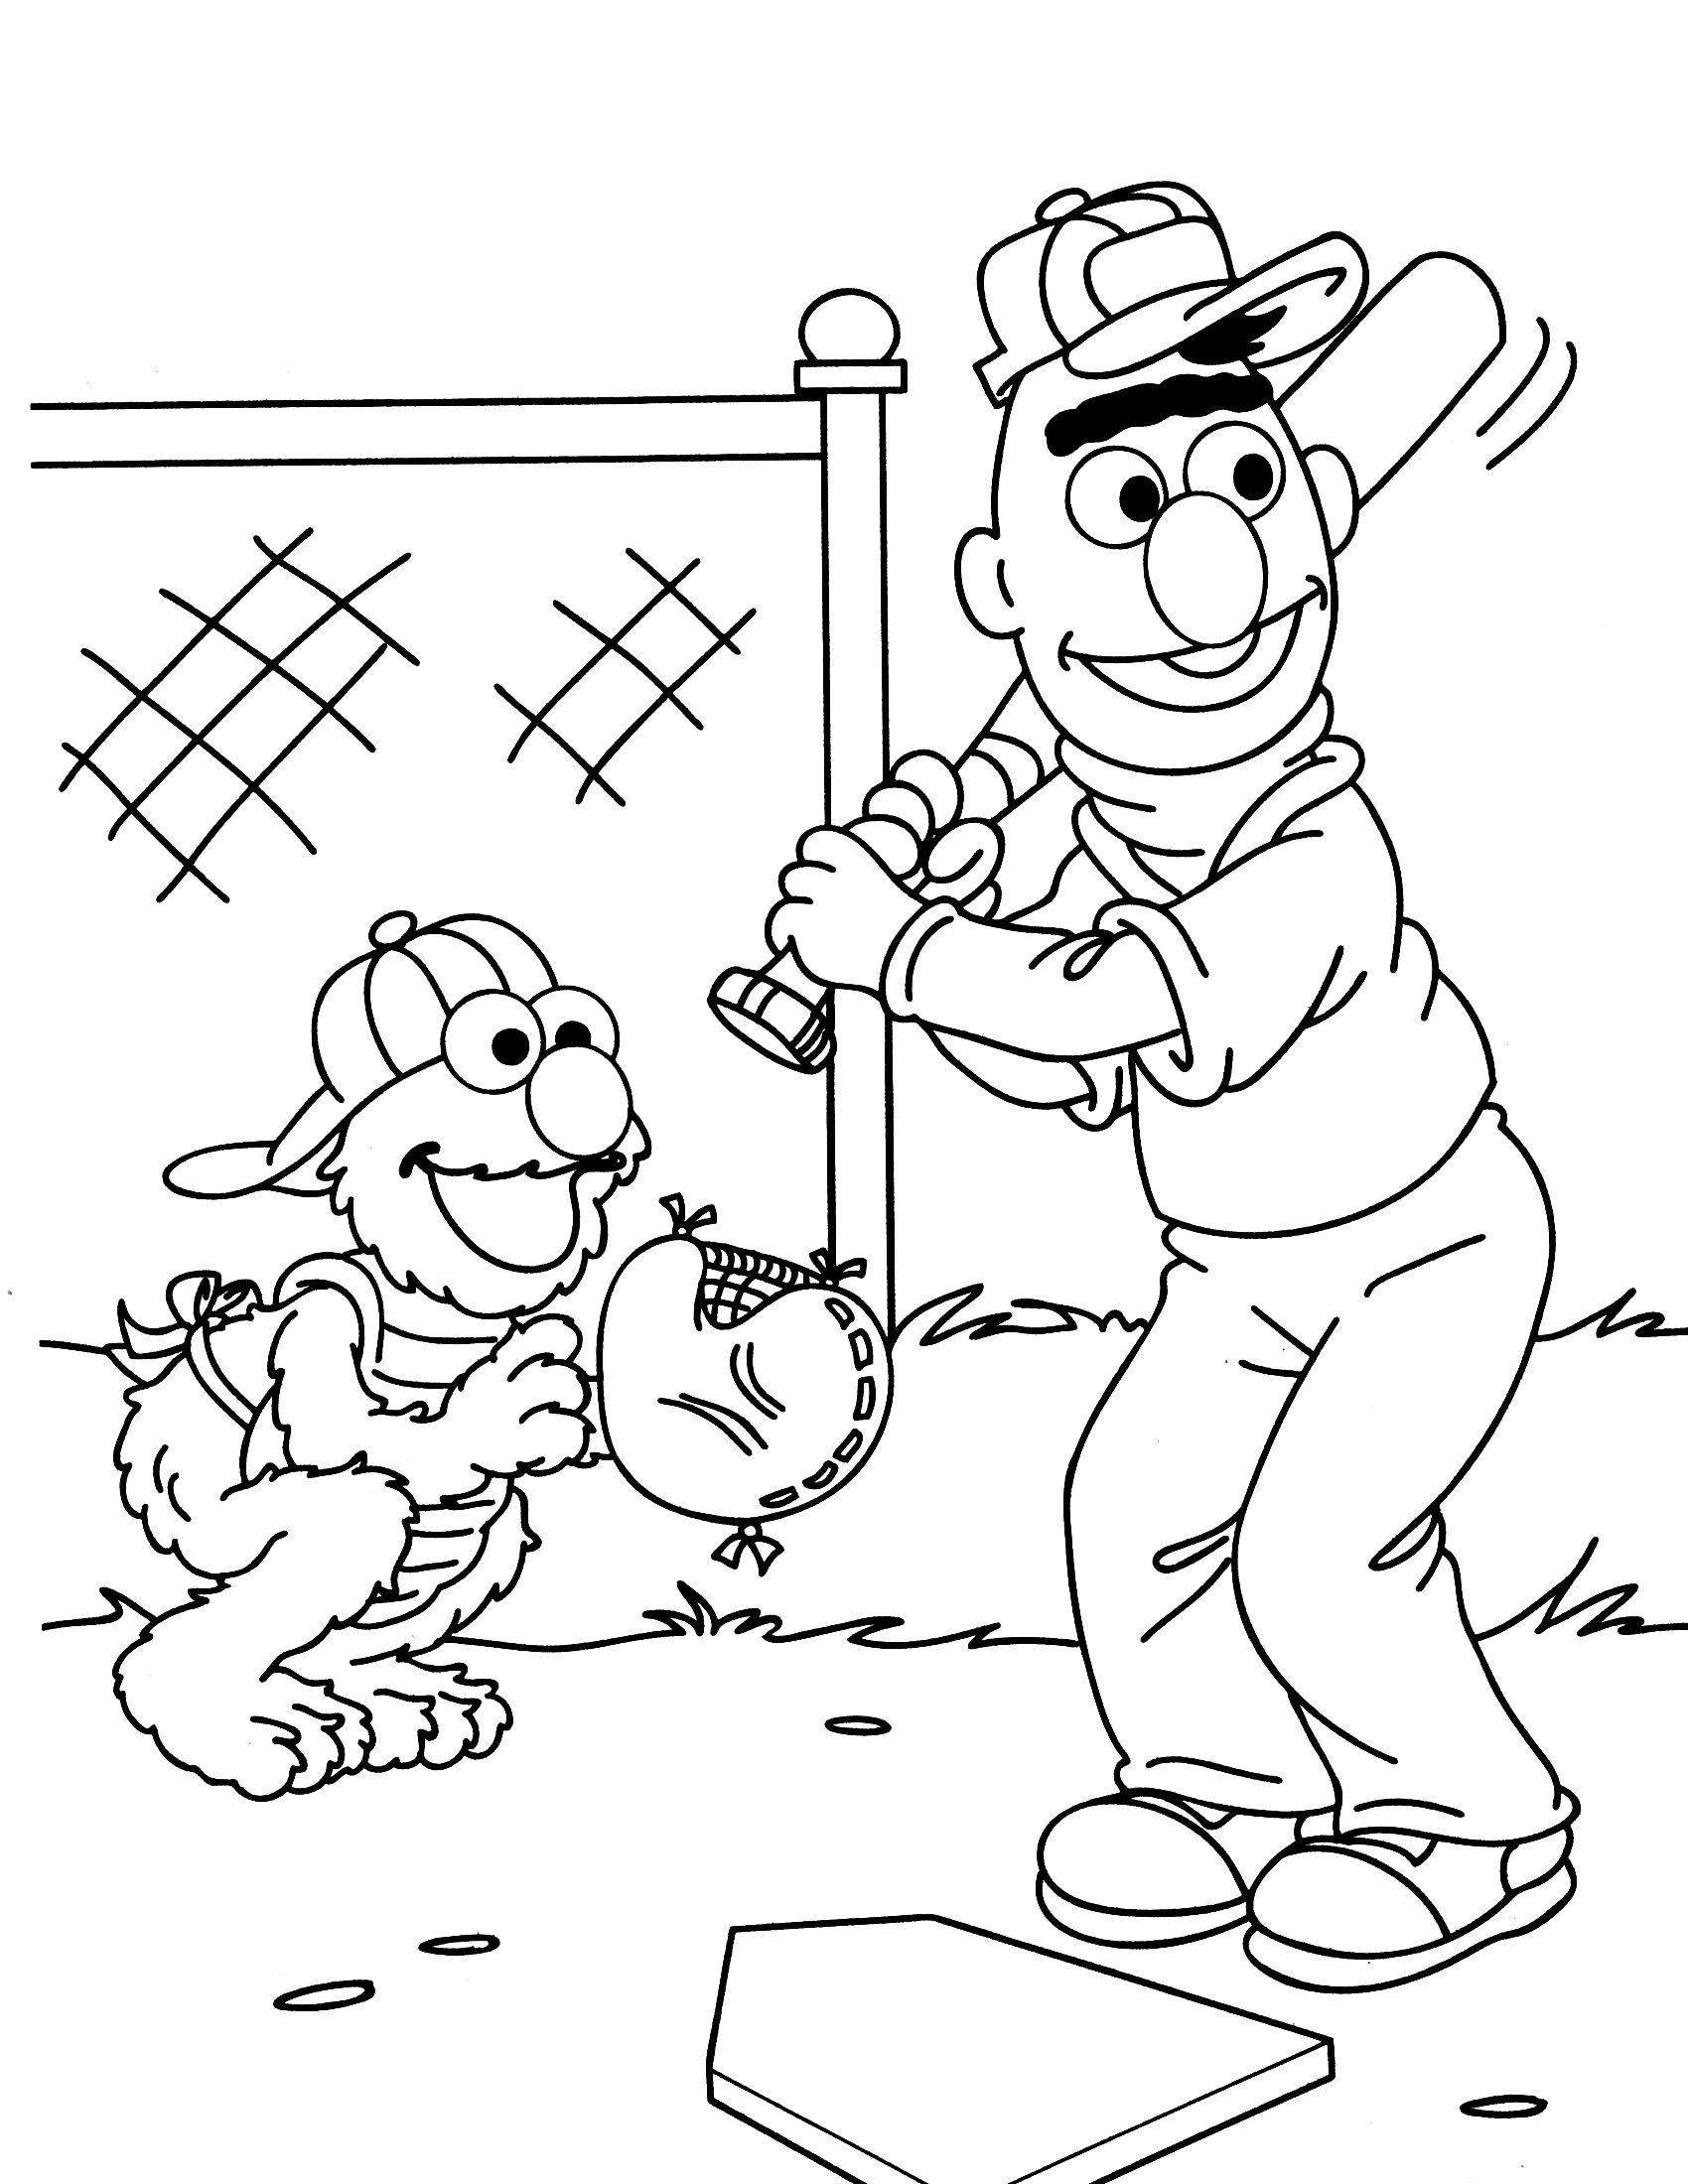 Sesame street coloring pages 360coloringpages for Sesame street color pages